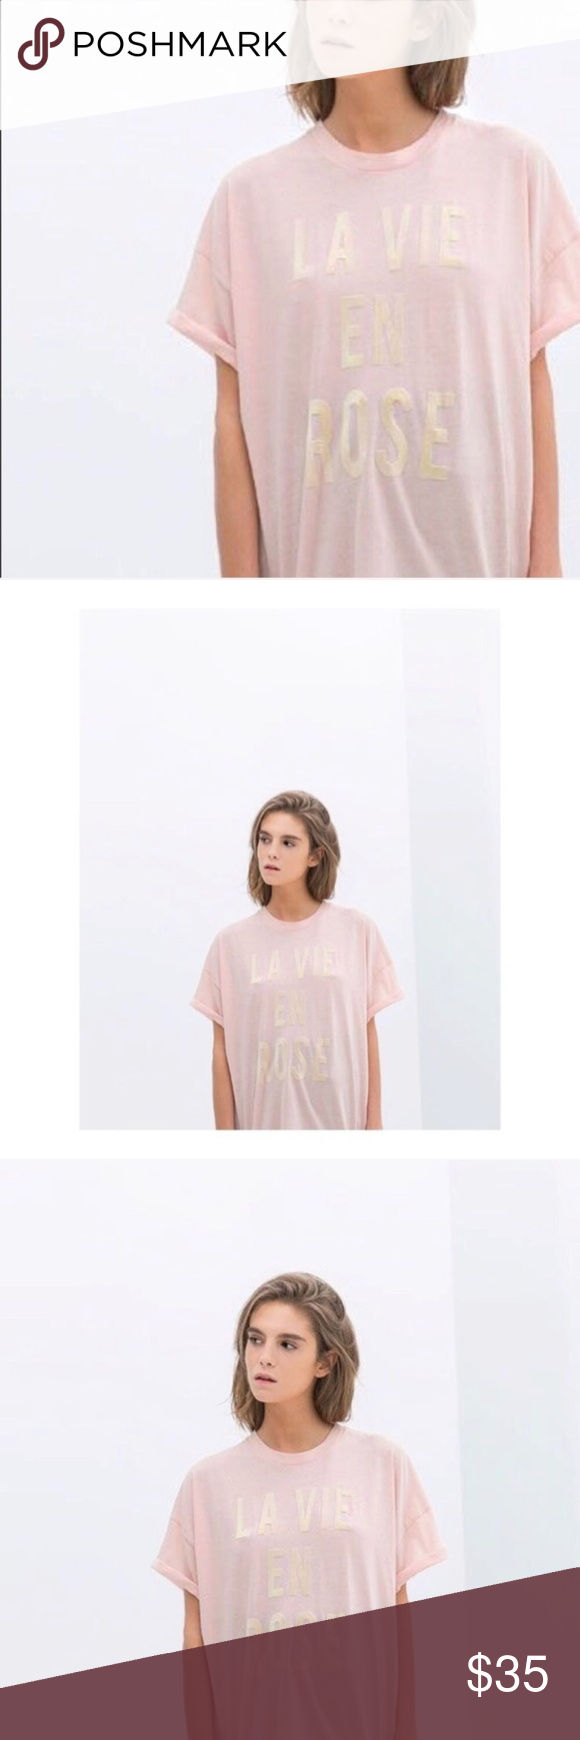 5d50d46038d66 Zara] La Vie En Rose Tee - Limited Tee in 2018 | My Posh Closet ...